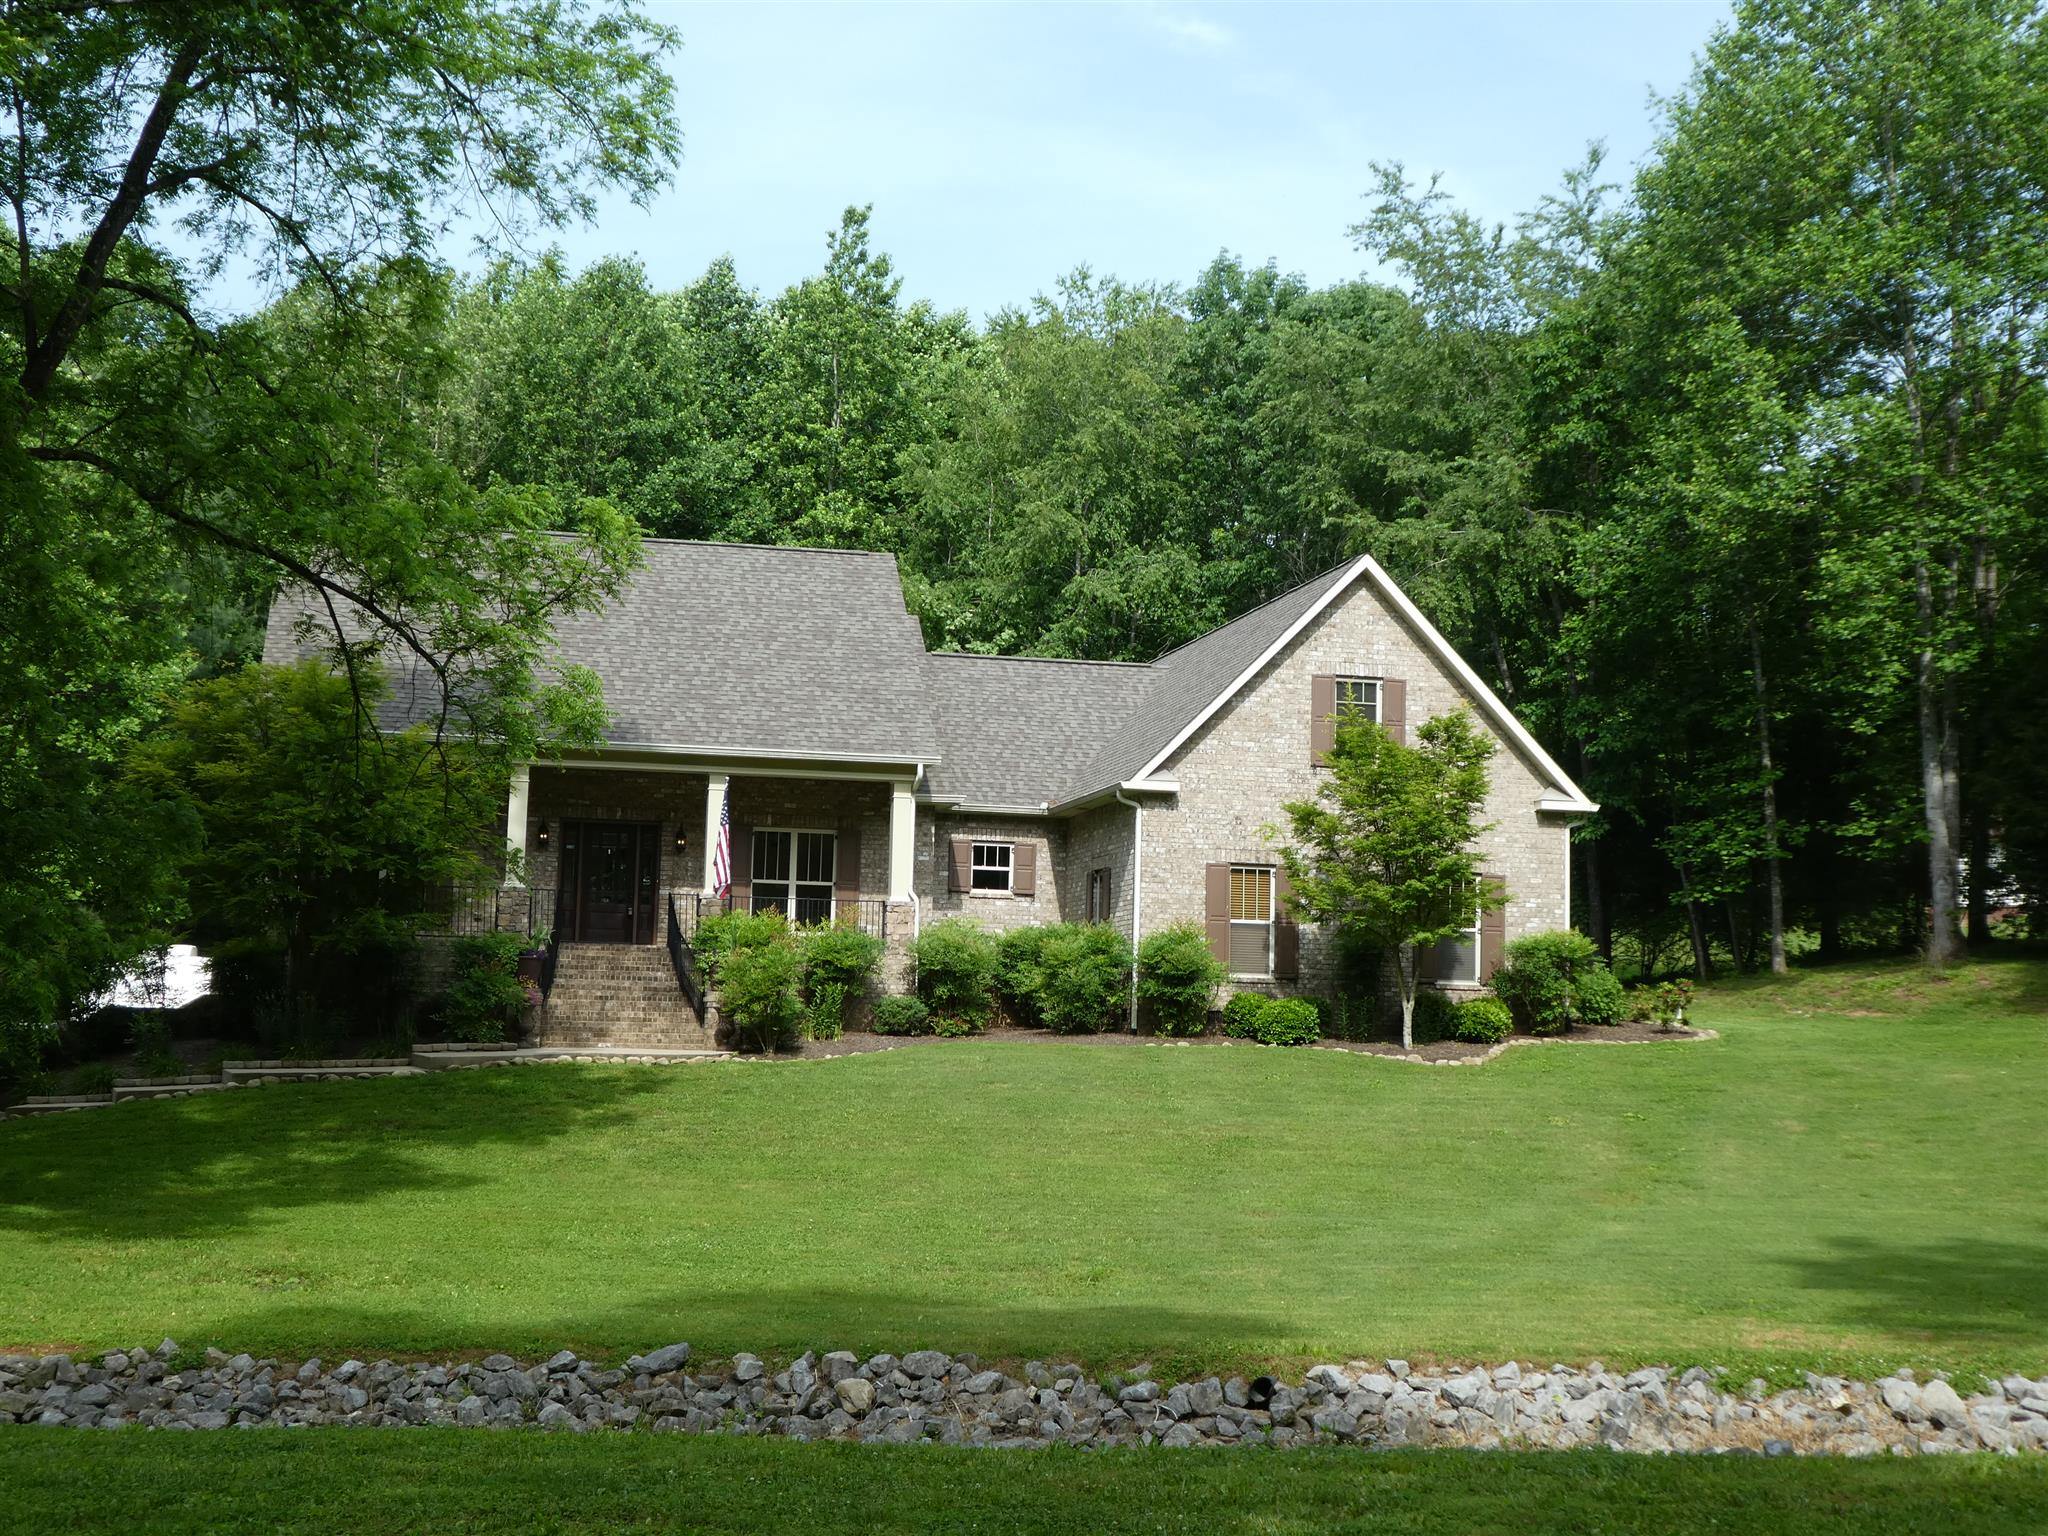 111 Kimberly Ln, Pleasant View, TN 37146 - Pleasant View, TN real estate listing